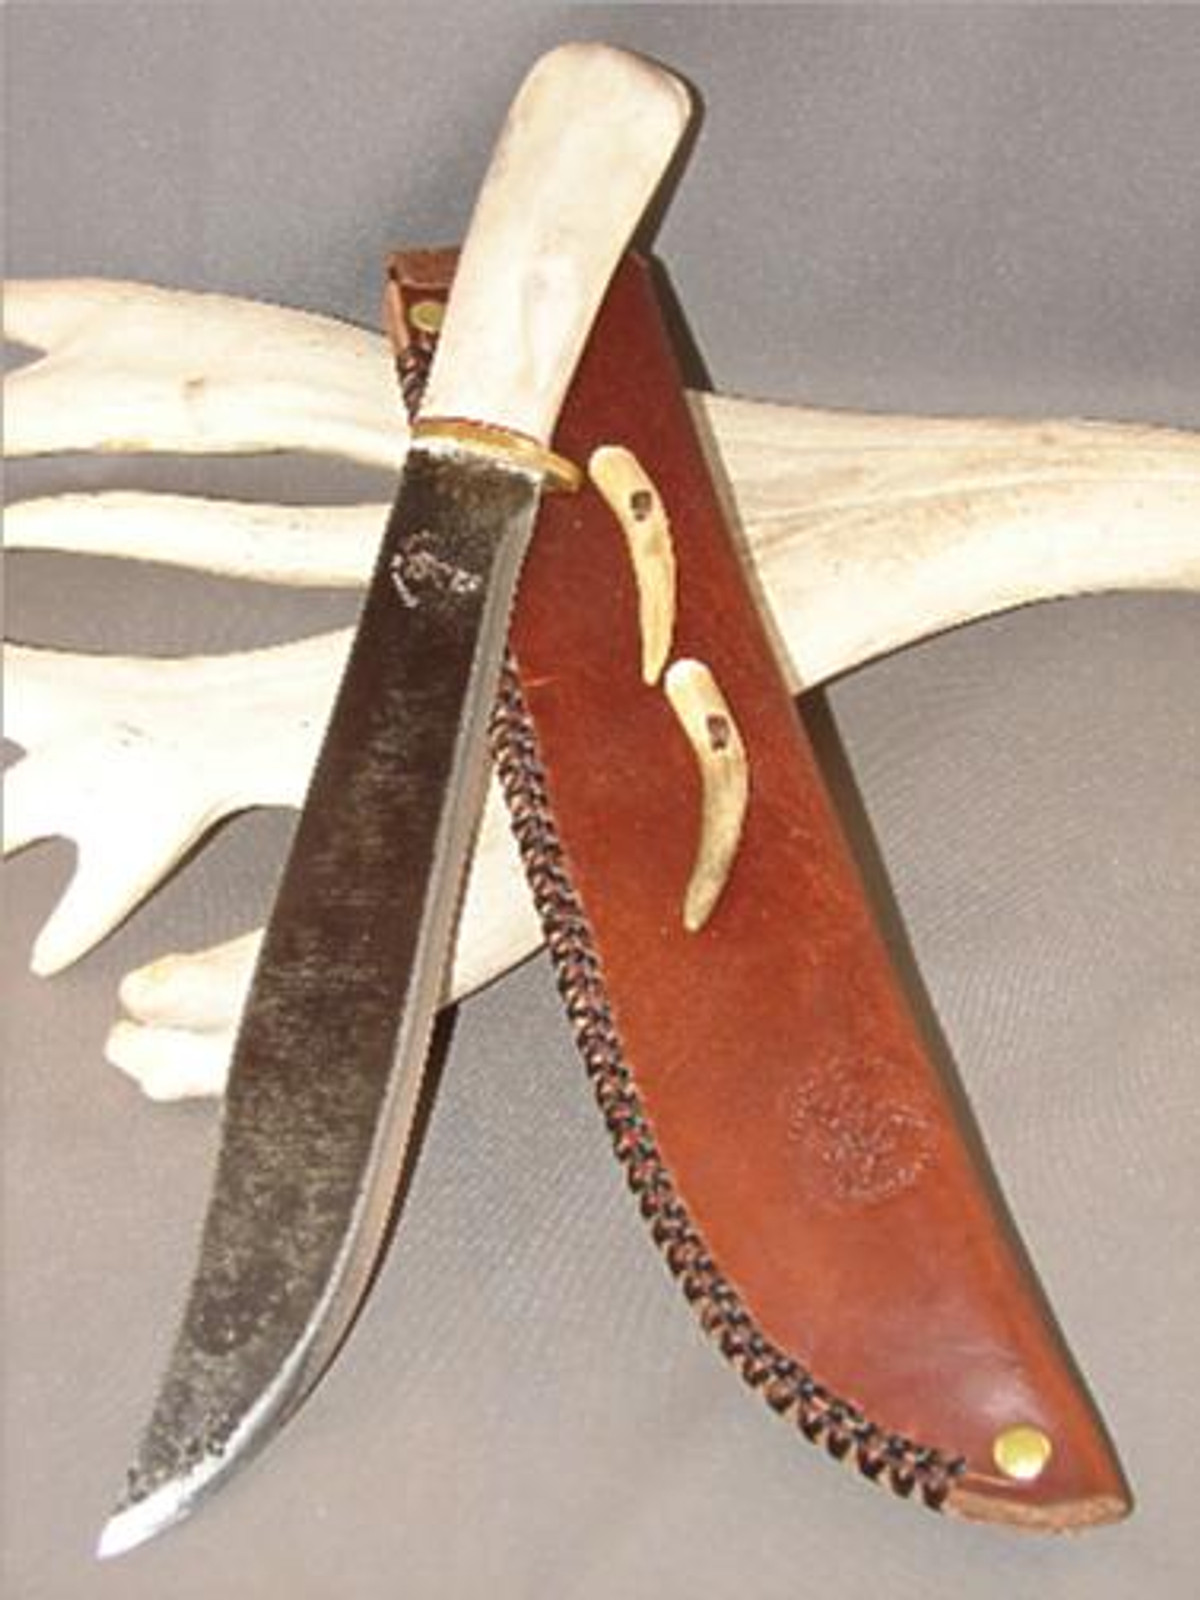 Custom Made Reindeer Antler Knife (The Bear)